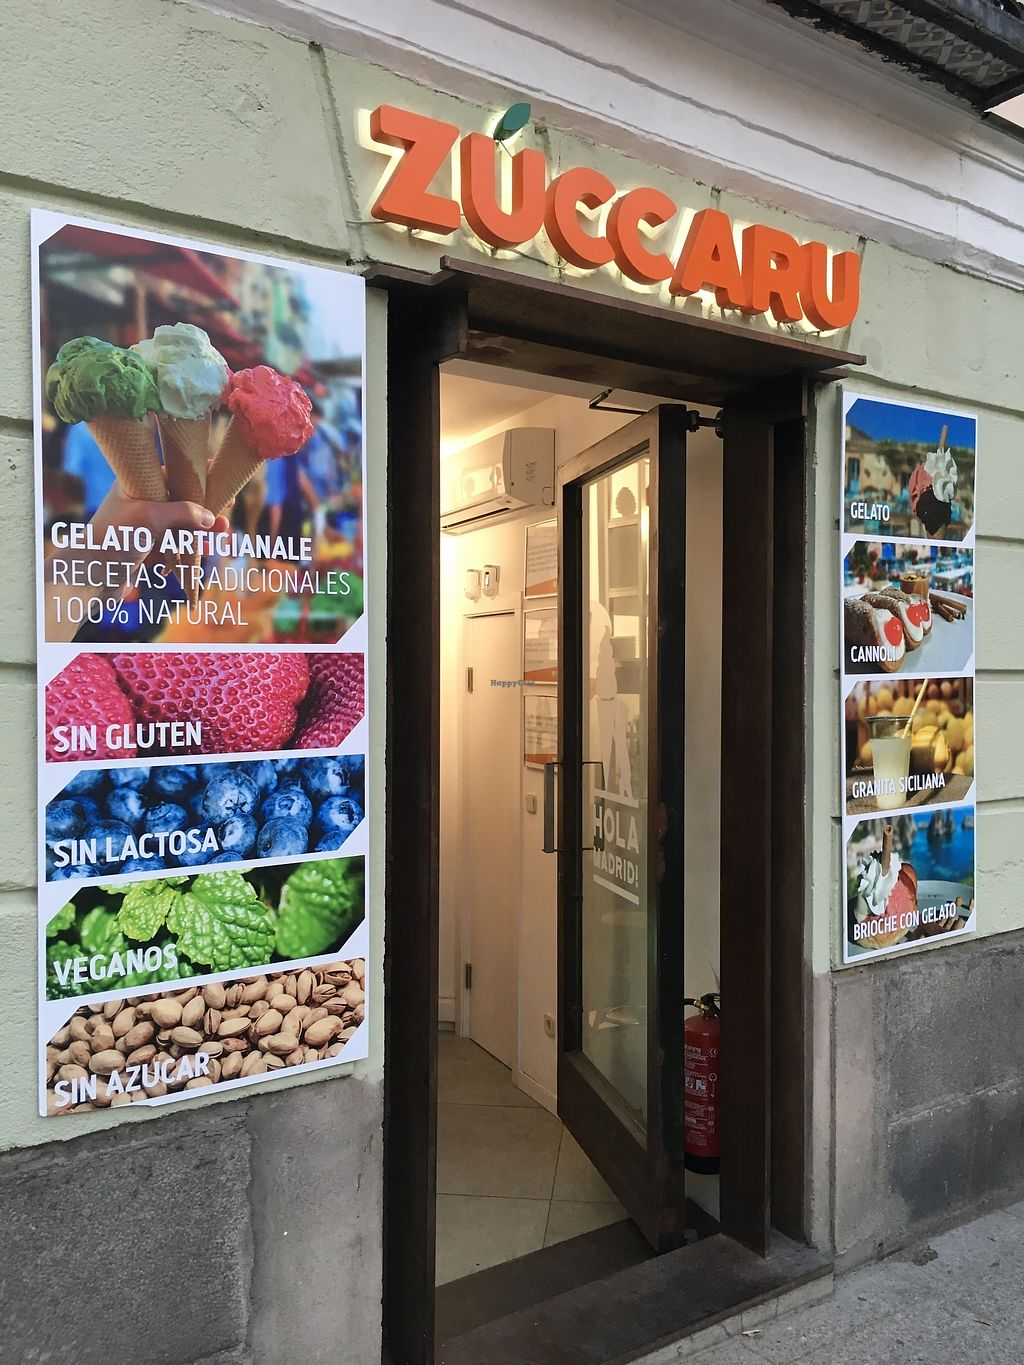 "Photo of Zuccaru  by <a href=""/members/profile/radiocaz"">radiocaz</a> <br/>Entrance <br/> August 13, 2017  - <a href='/contact/abuse/image/98565/292411'>Report</a>"